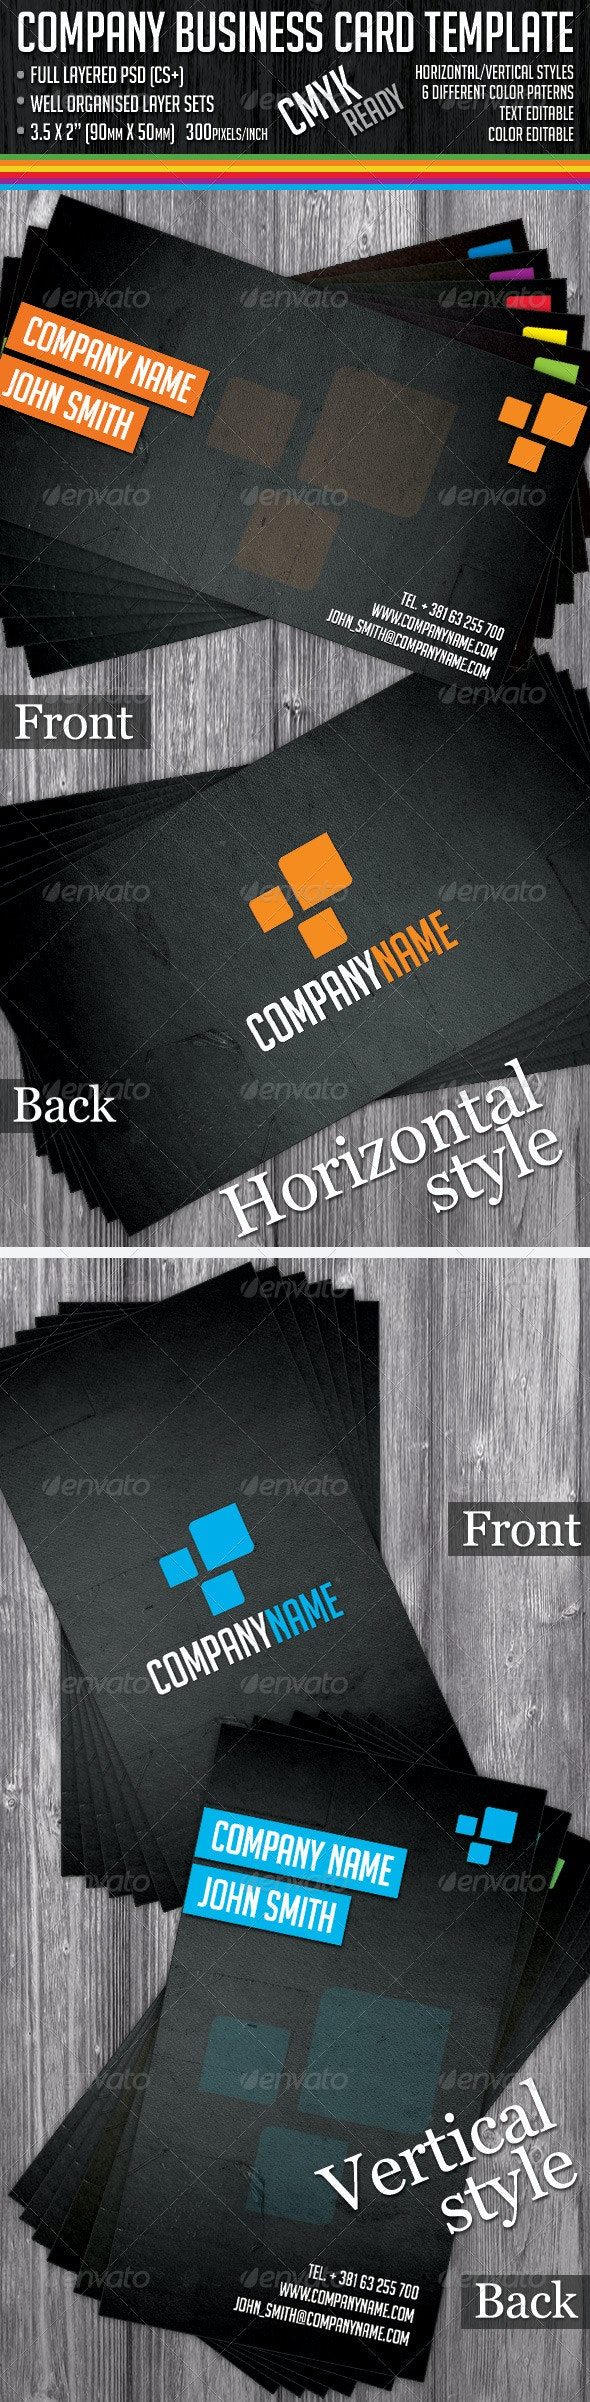 Universal Business Cards - Creative Business Cards